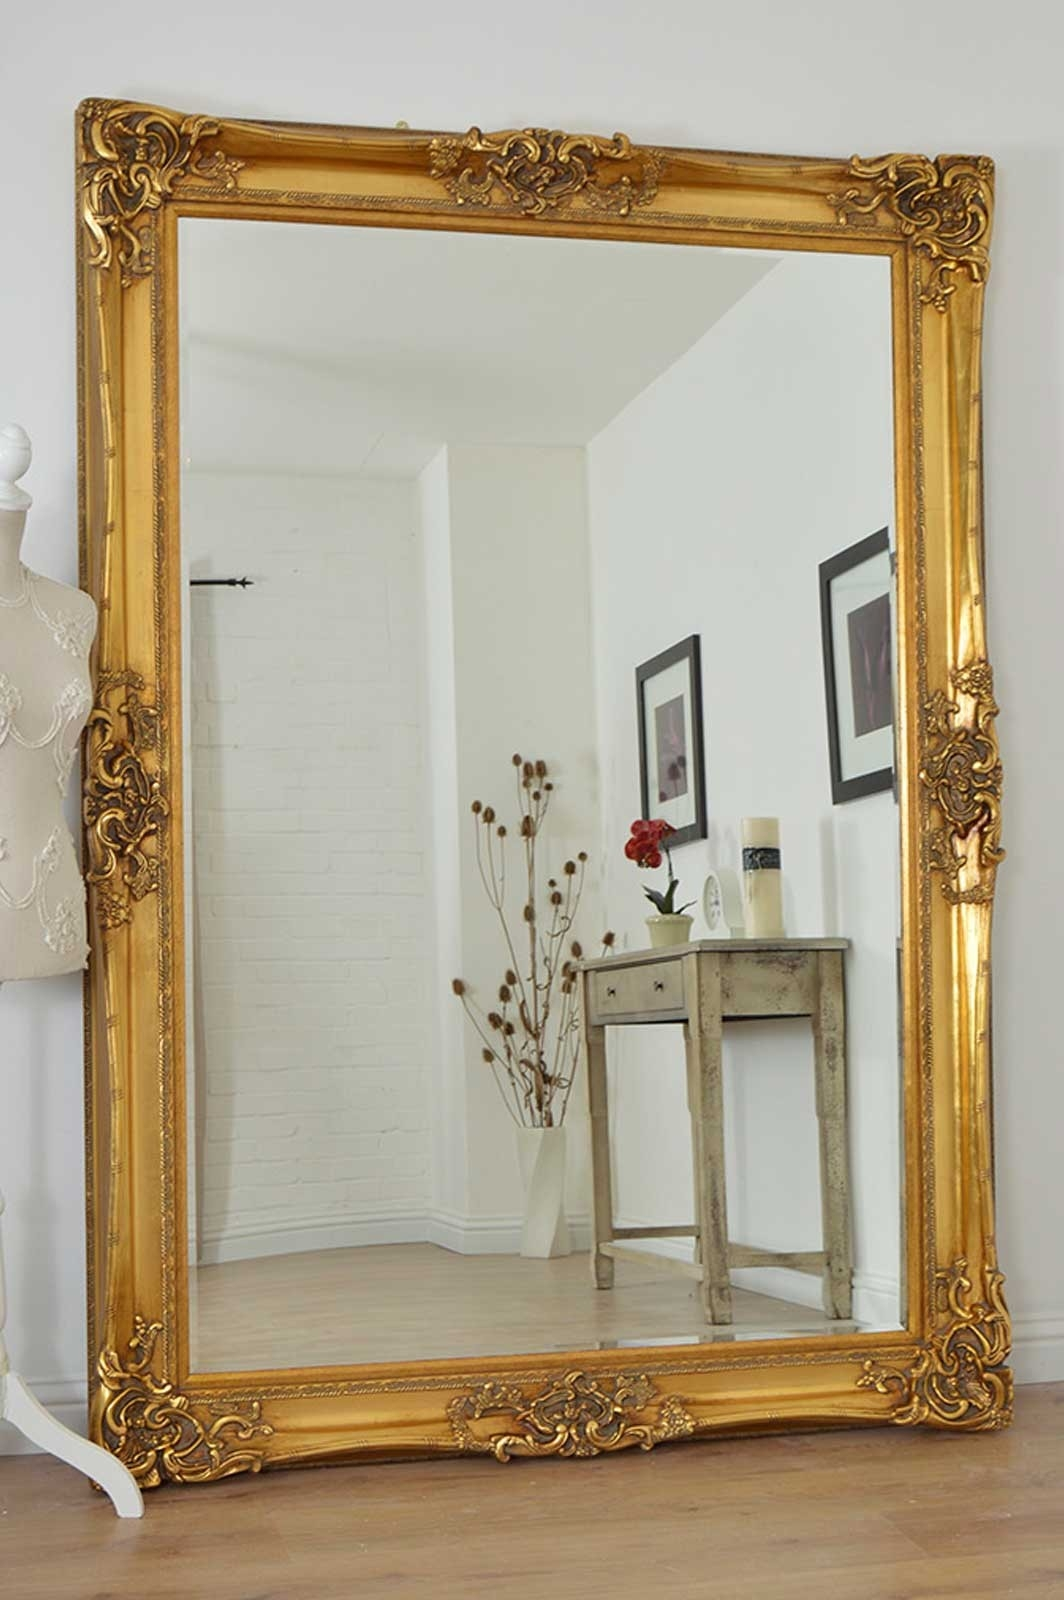 Large Gold Very Ornate Antique Design Wall Mirror 7ft X 5ft 213cm Within Large Black Ornate Mirror (Image 8 of 15)